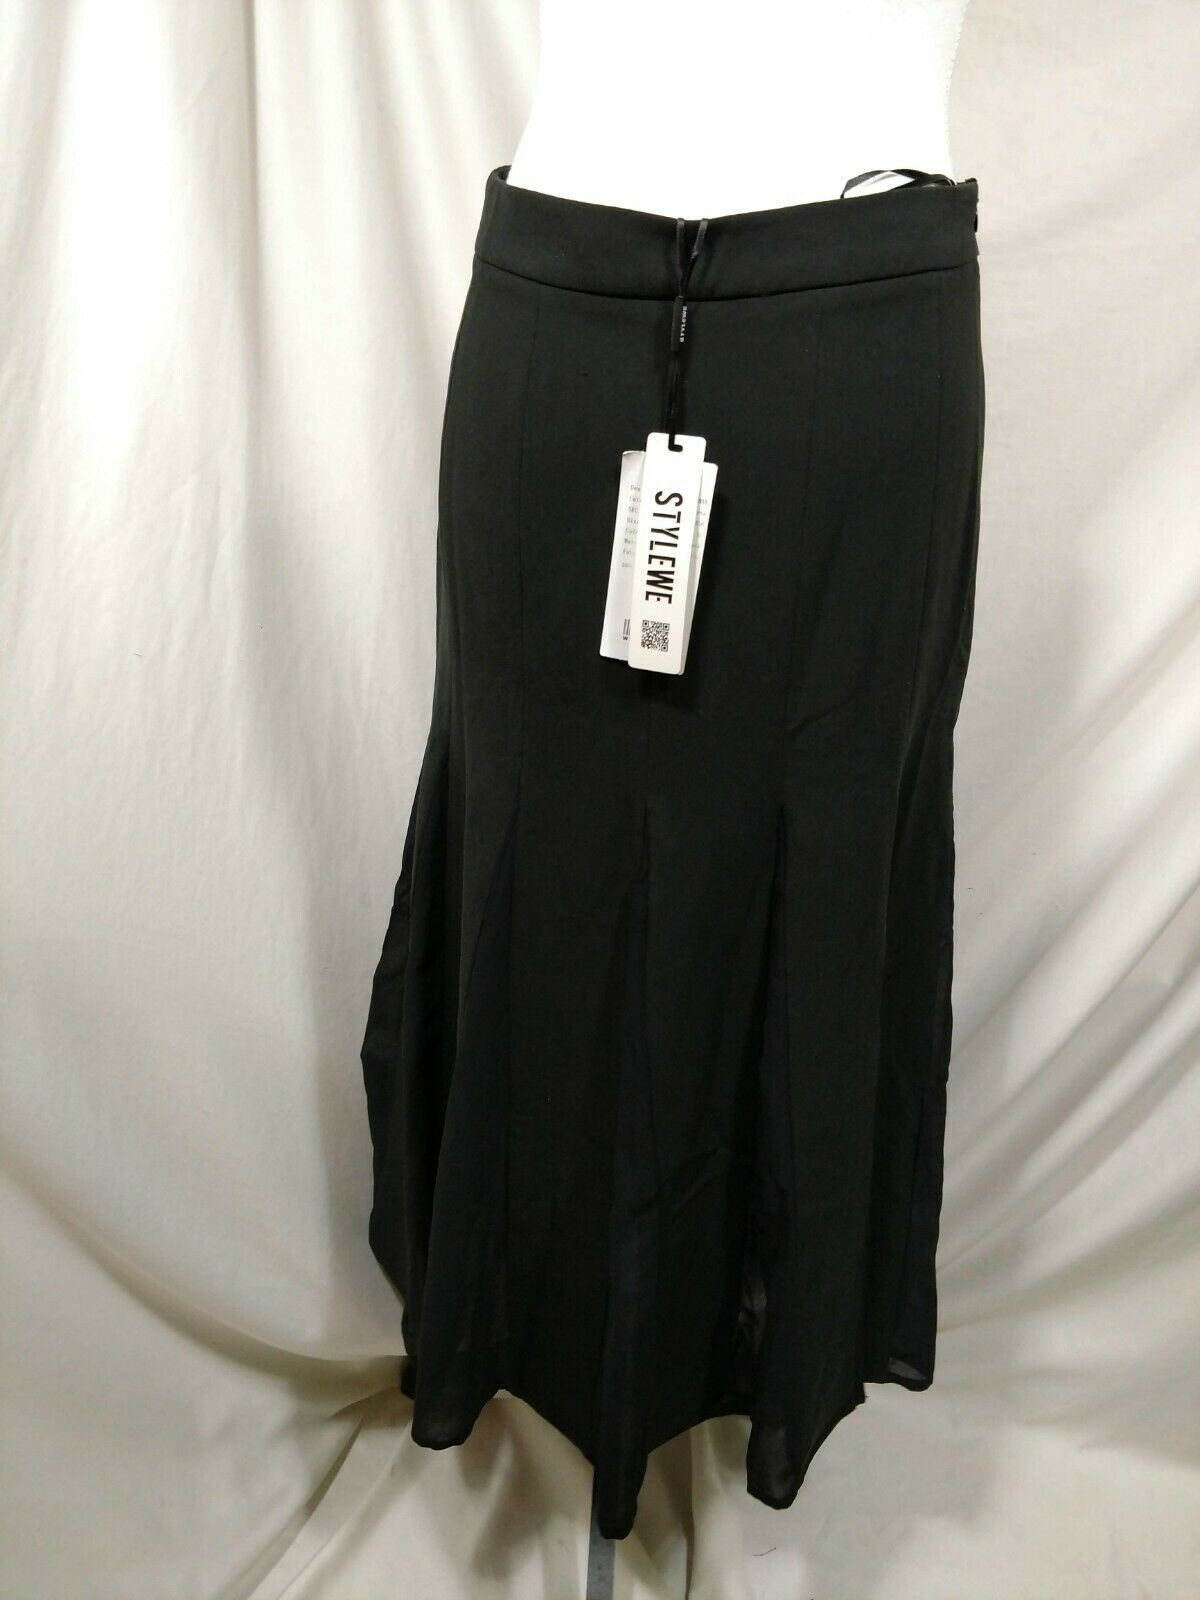 "STYLEWE Black Skirt Medium ""XL"" Flowy Fit & Flare SHANGMAN 6 8 Maxi Long Modest image 5"